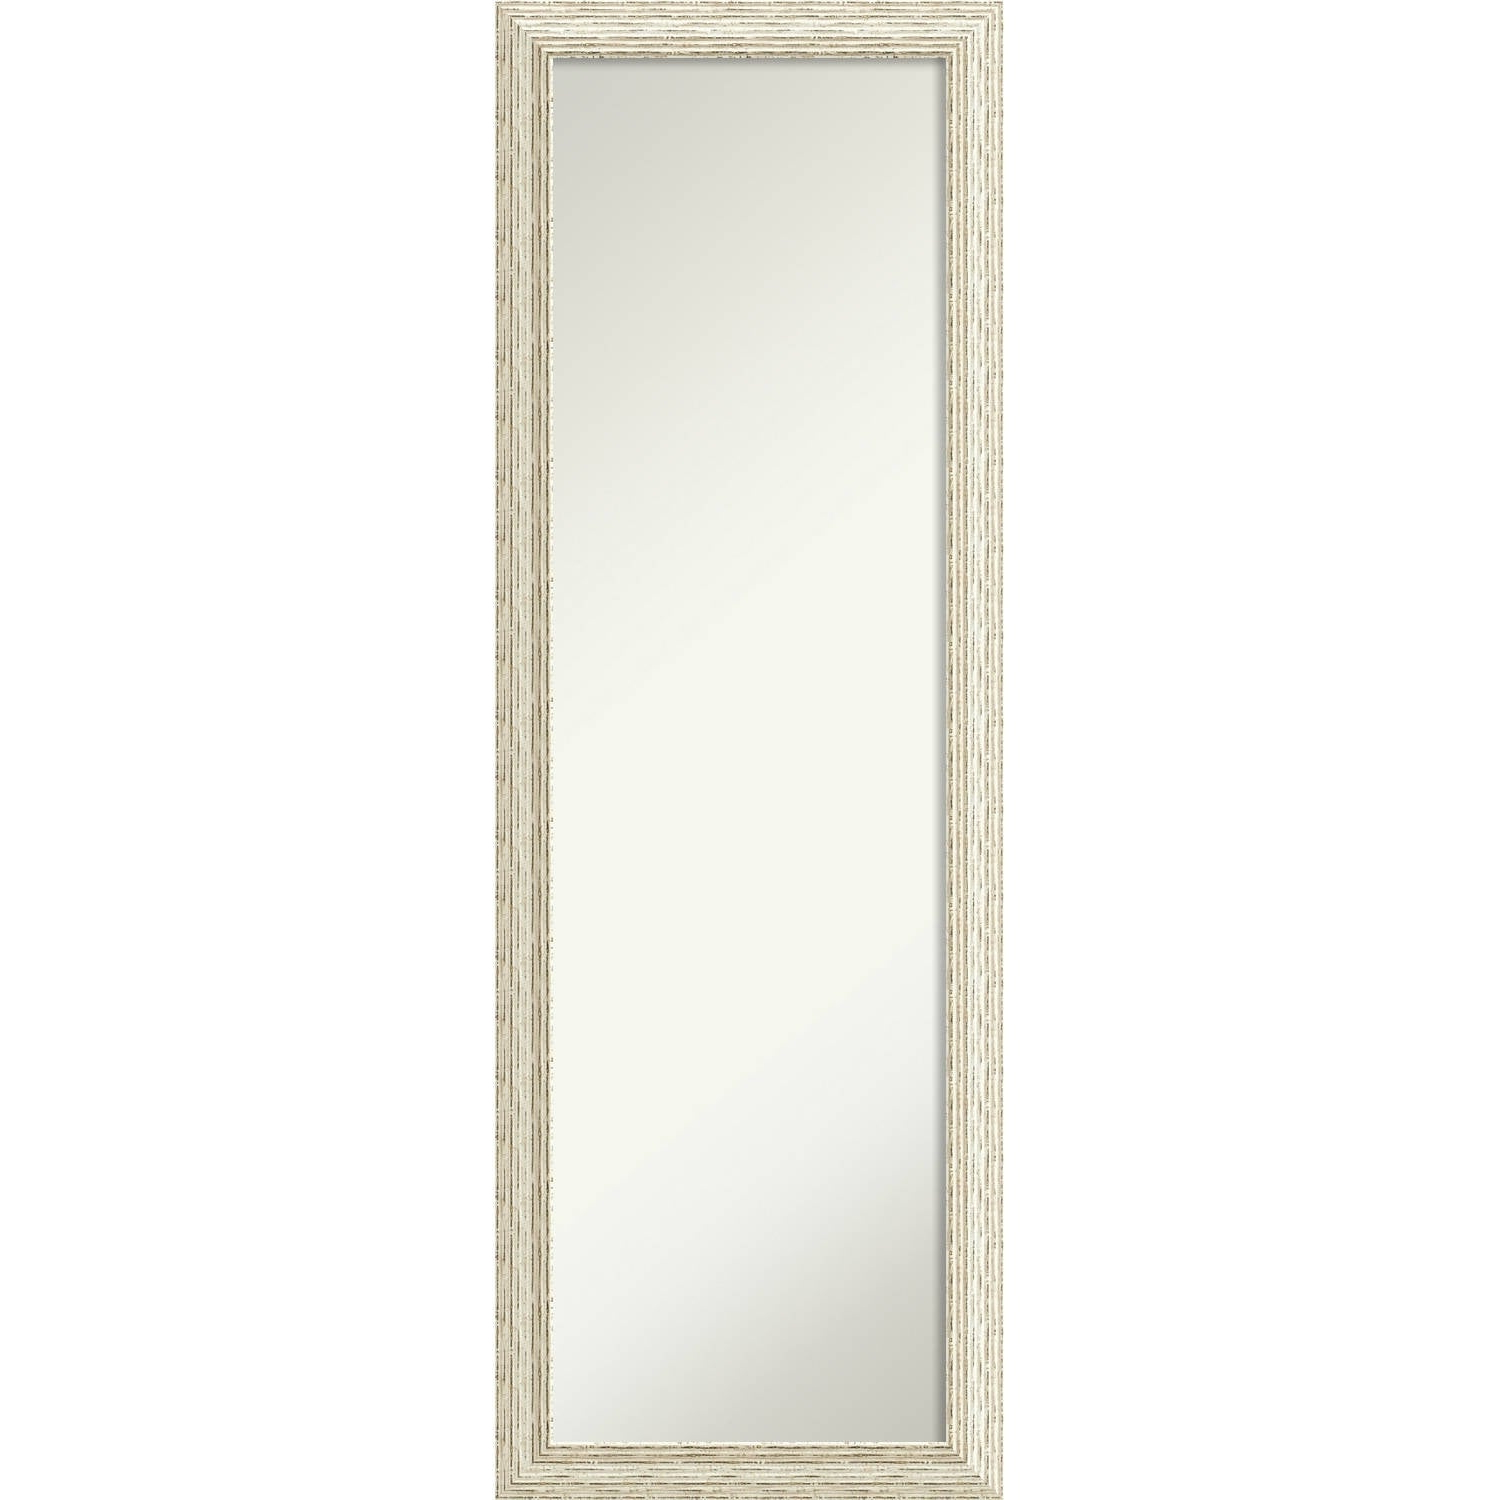 Popular On The Door Full Length Wall Mirror, Cape Cod White Wash 18 X 52 Inch –  White Washed – 51.38 X 17.38 X  (View 17 of 20)